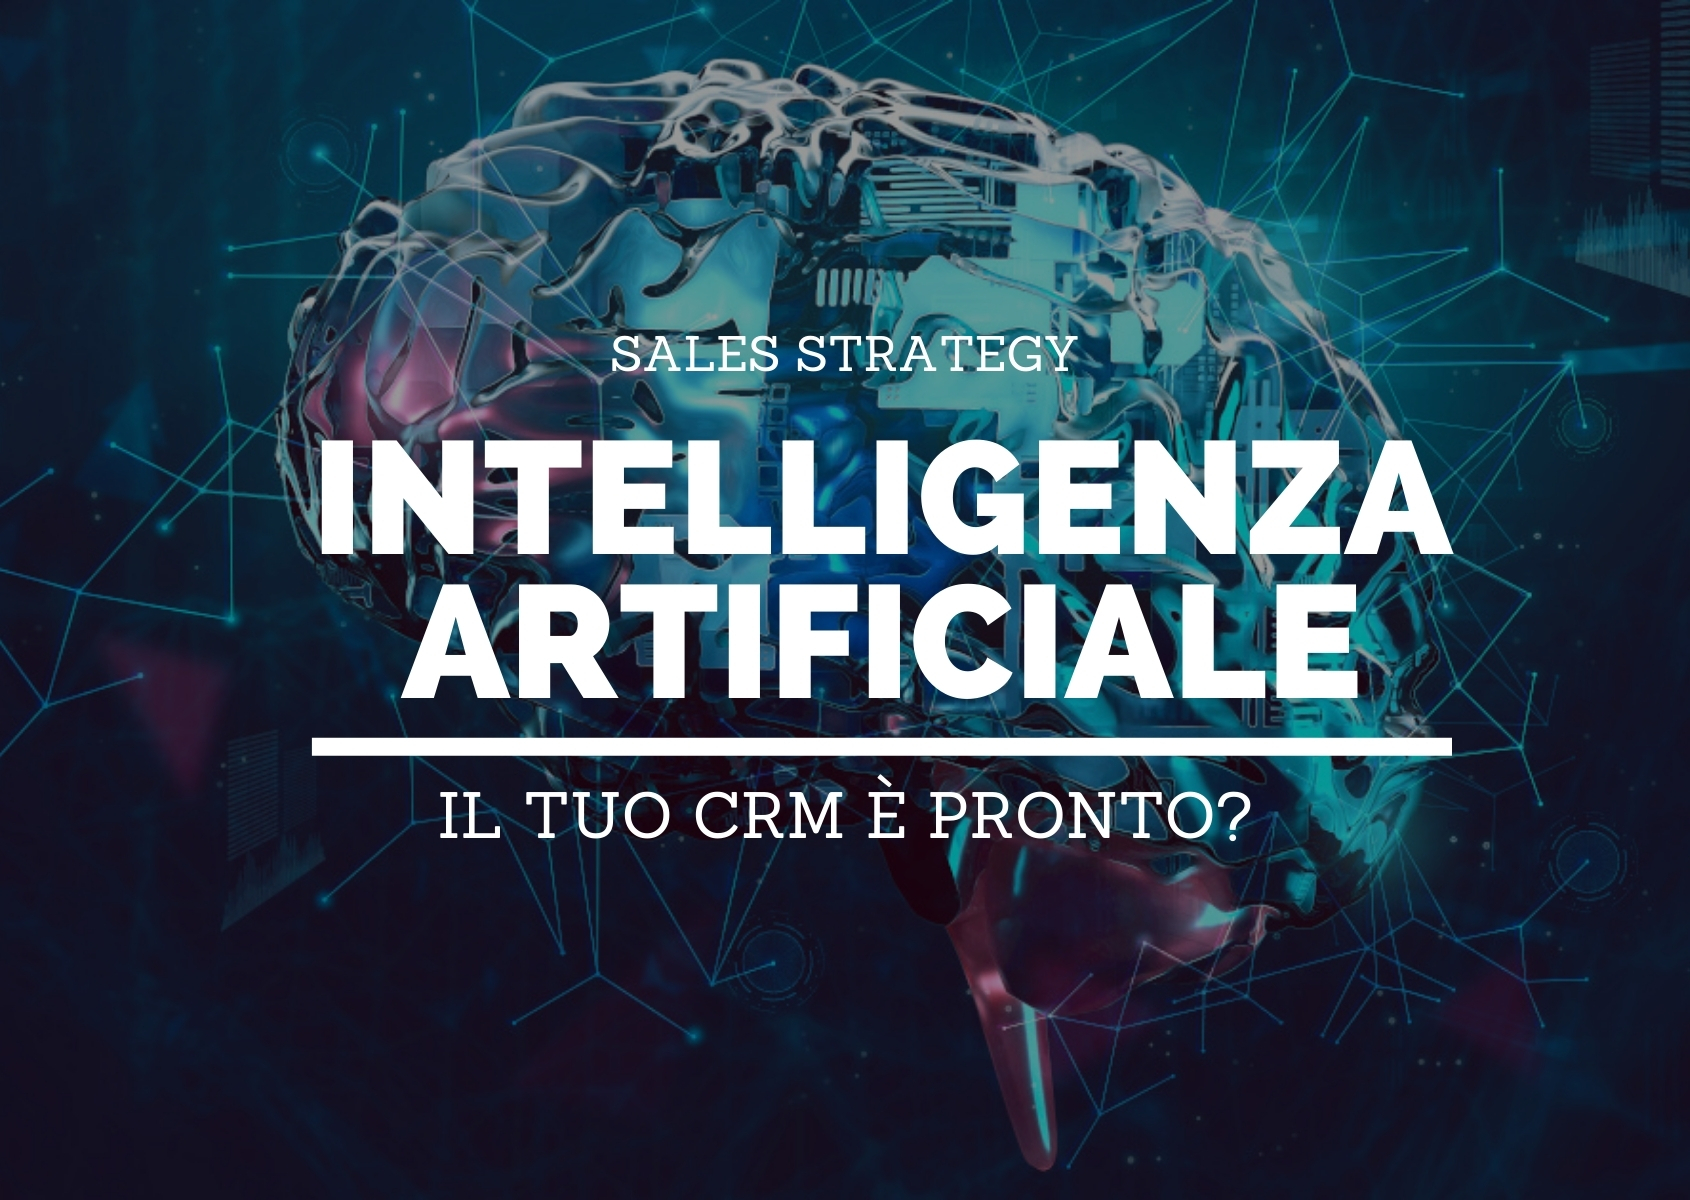 Cover: Il tuo CRM è pronto per l'intelligenza artificiale?